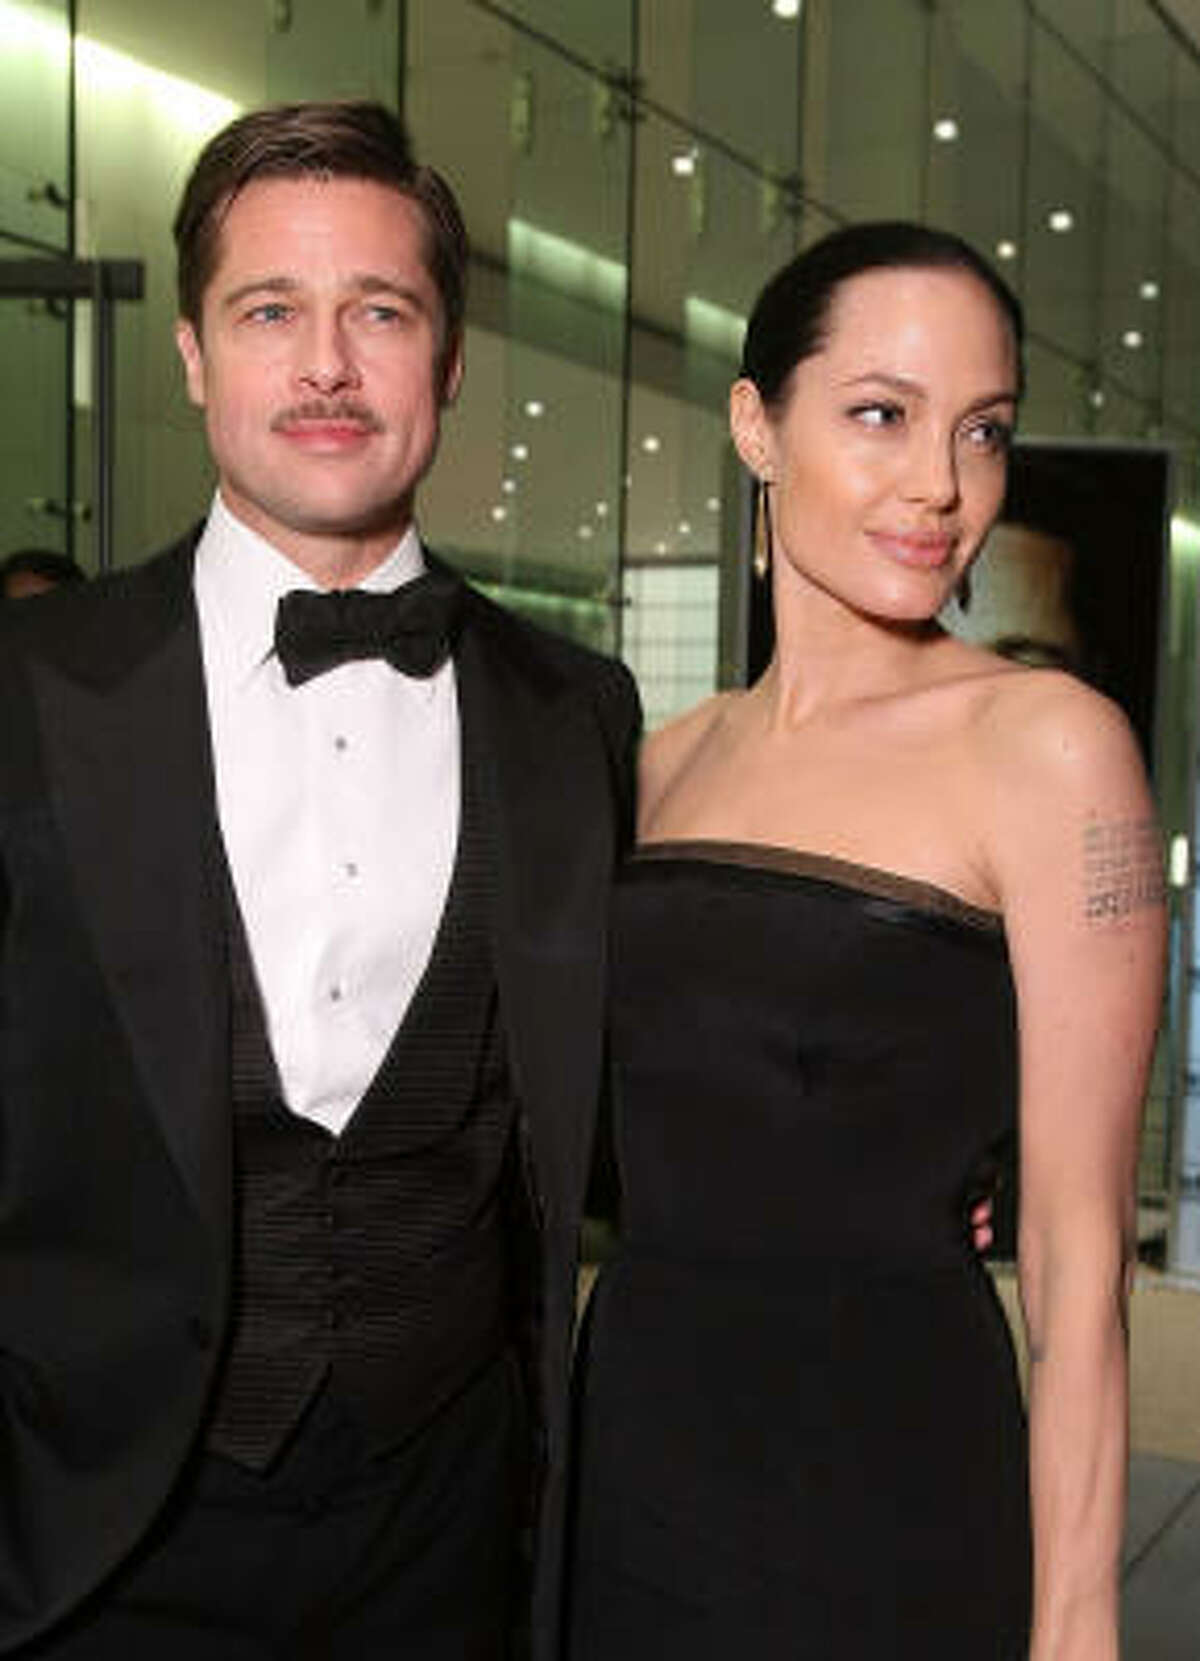 In one of the most publicized births of the year, Brad Pitt and Angelina Jolie welcomed twins to their family in July.